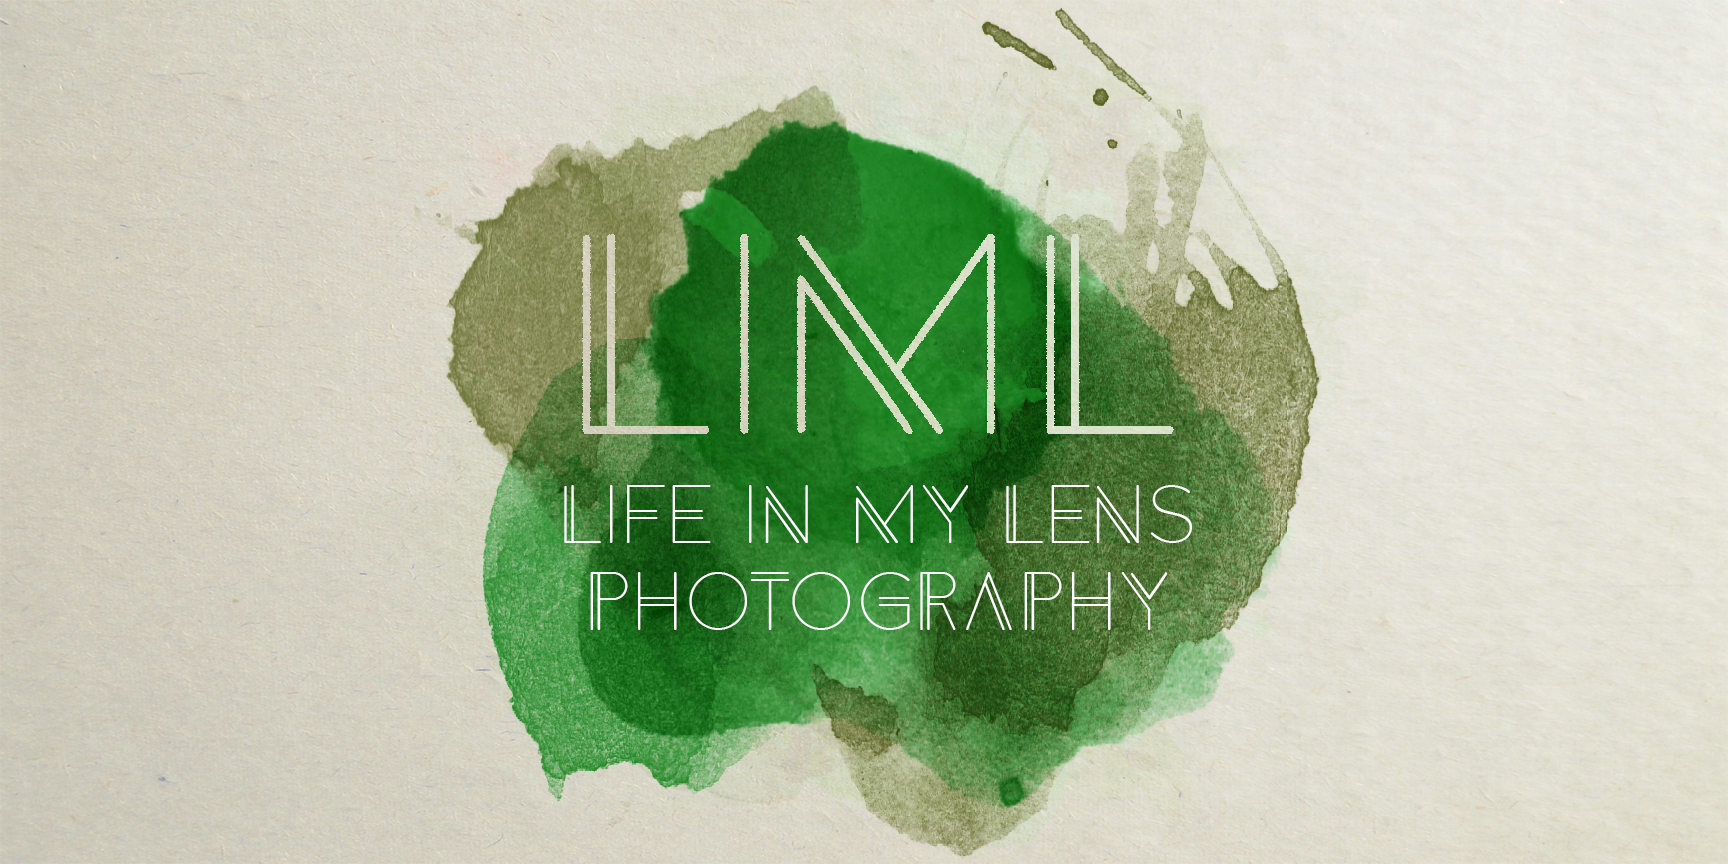 LIFE IN MY LENS PHOTOGRAPHY